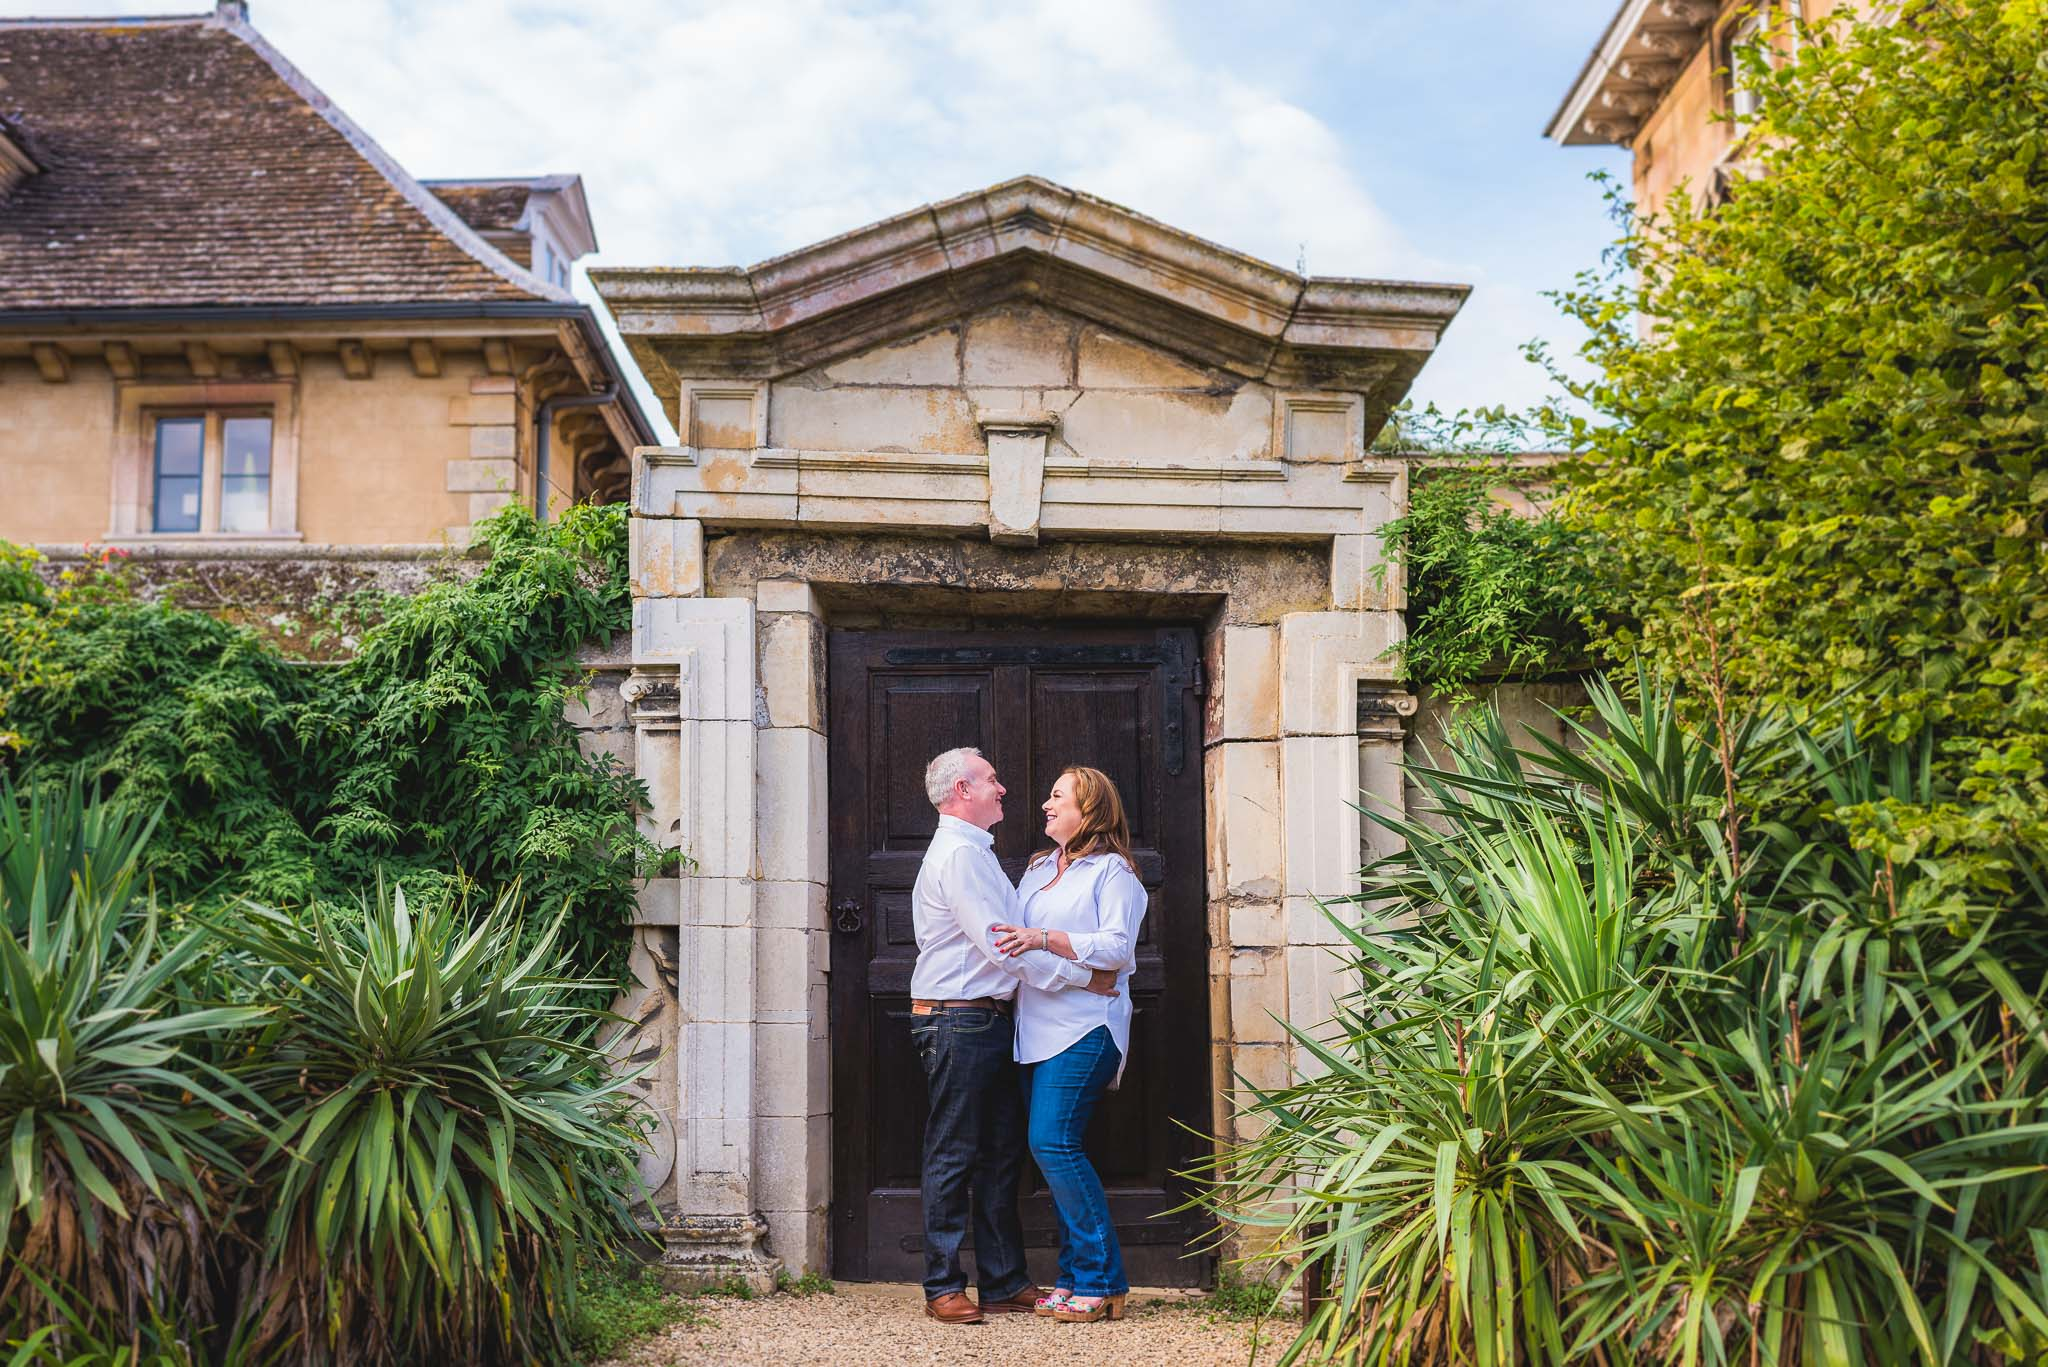 Thorpe Hall pre-wedding shoot – Susan & Richard